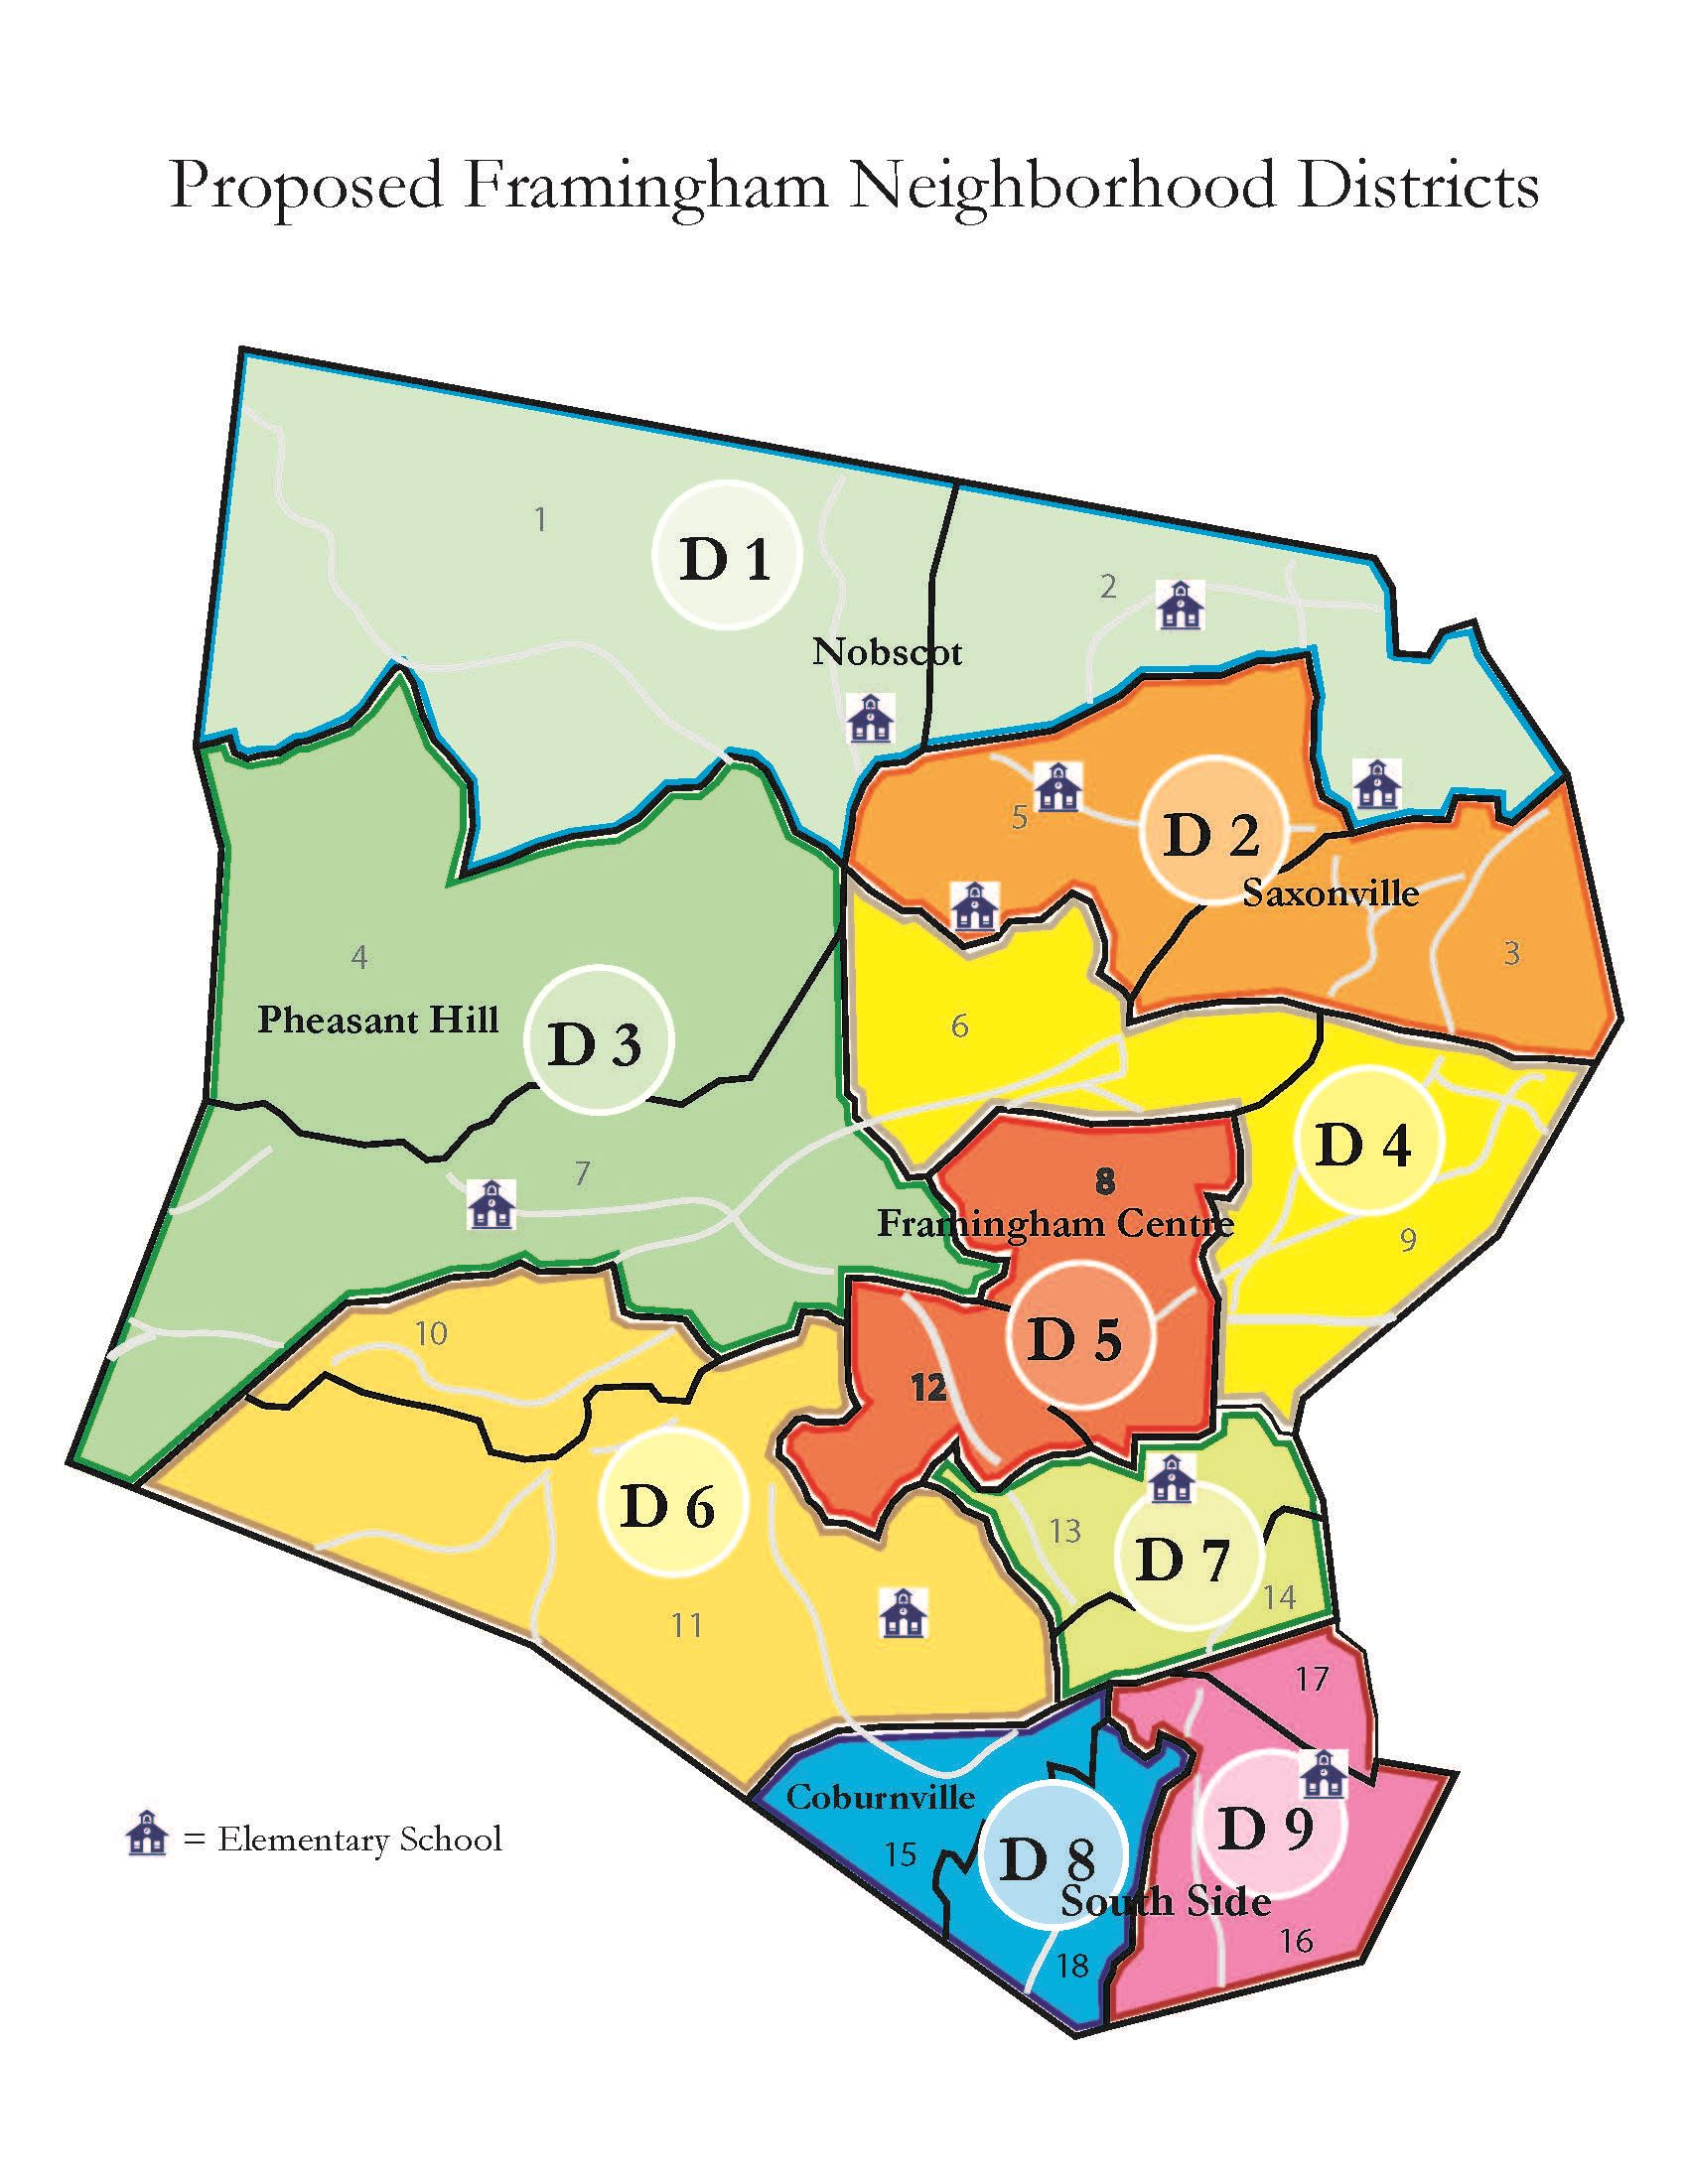 Proposed Precinct-District Map